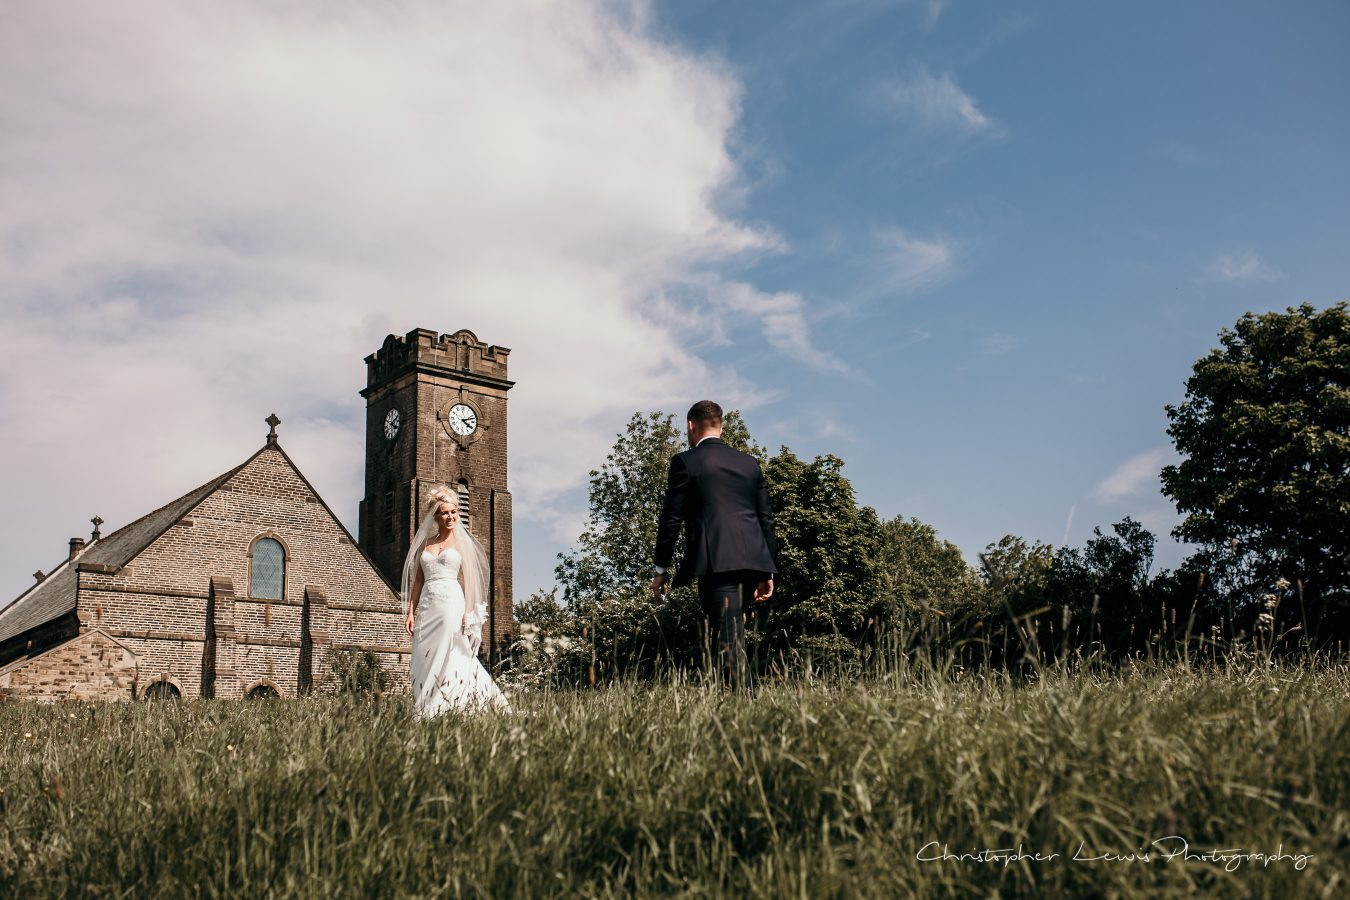 White-Hart-Lydgate-Wedding-Christopher-Lewis-Photography-160